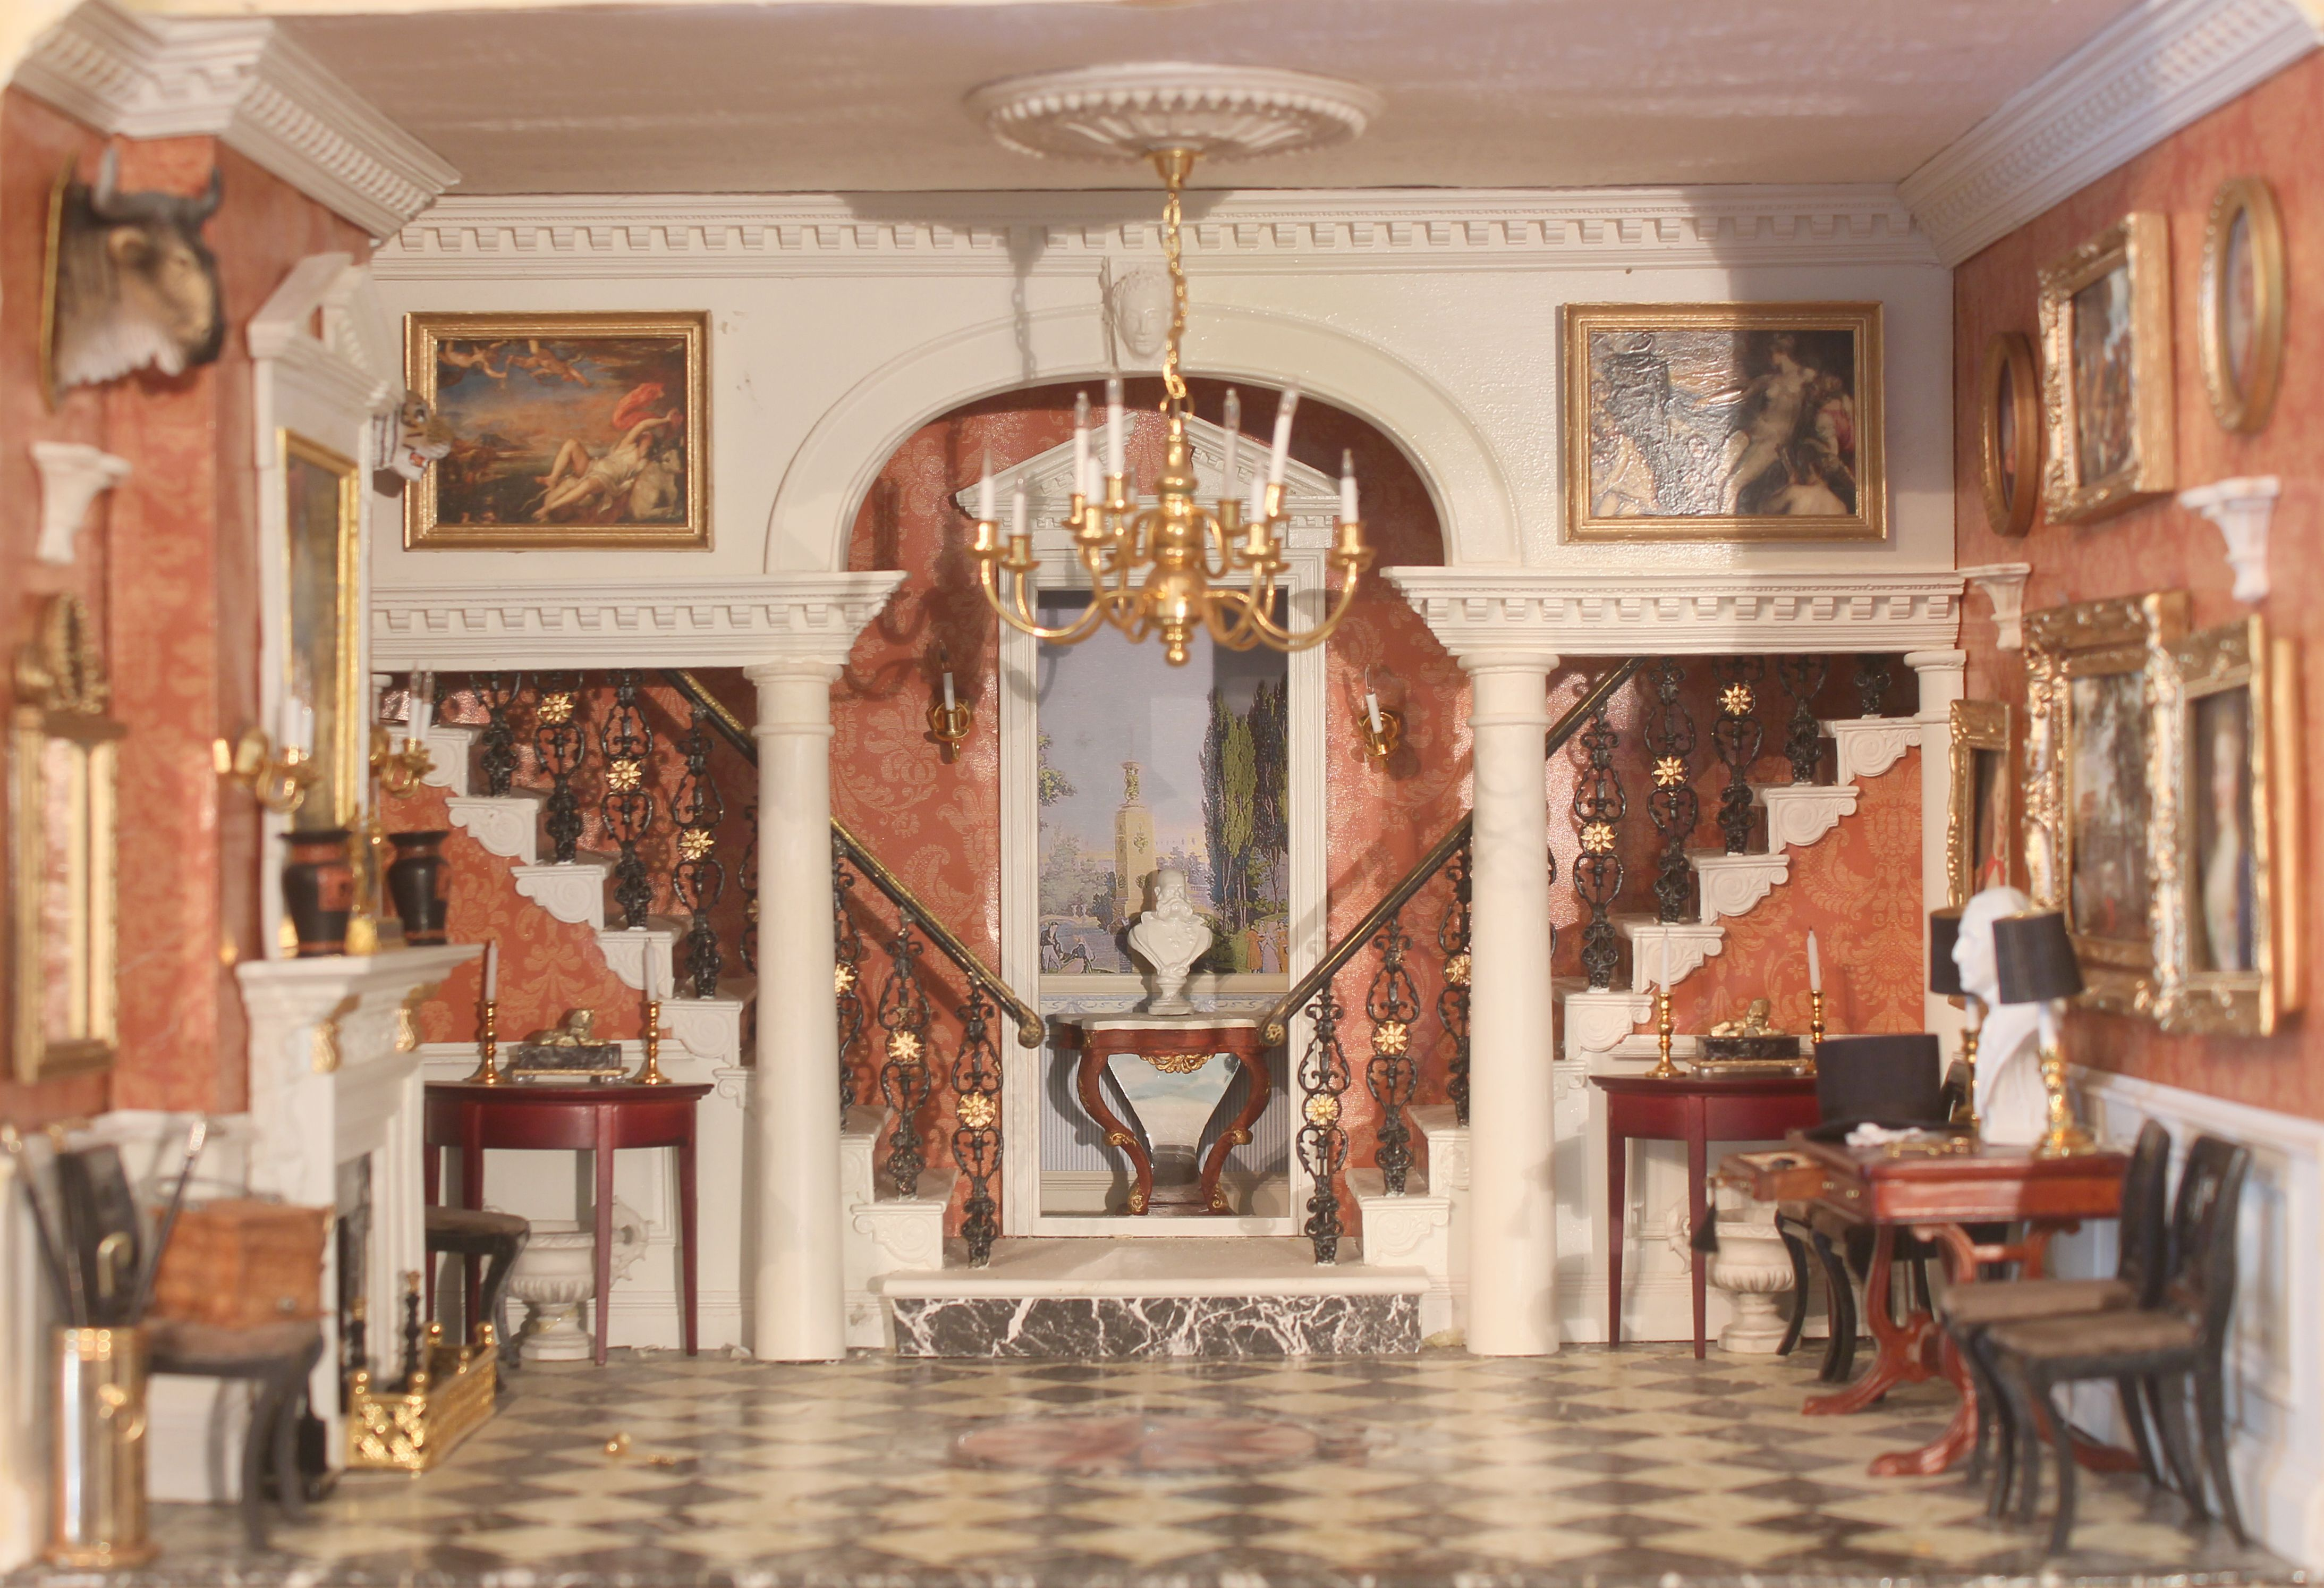 The entrance hall to the majestic Regency Merriman Park. Find out more in Aug 2014 issue of DHMS.